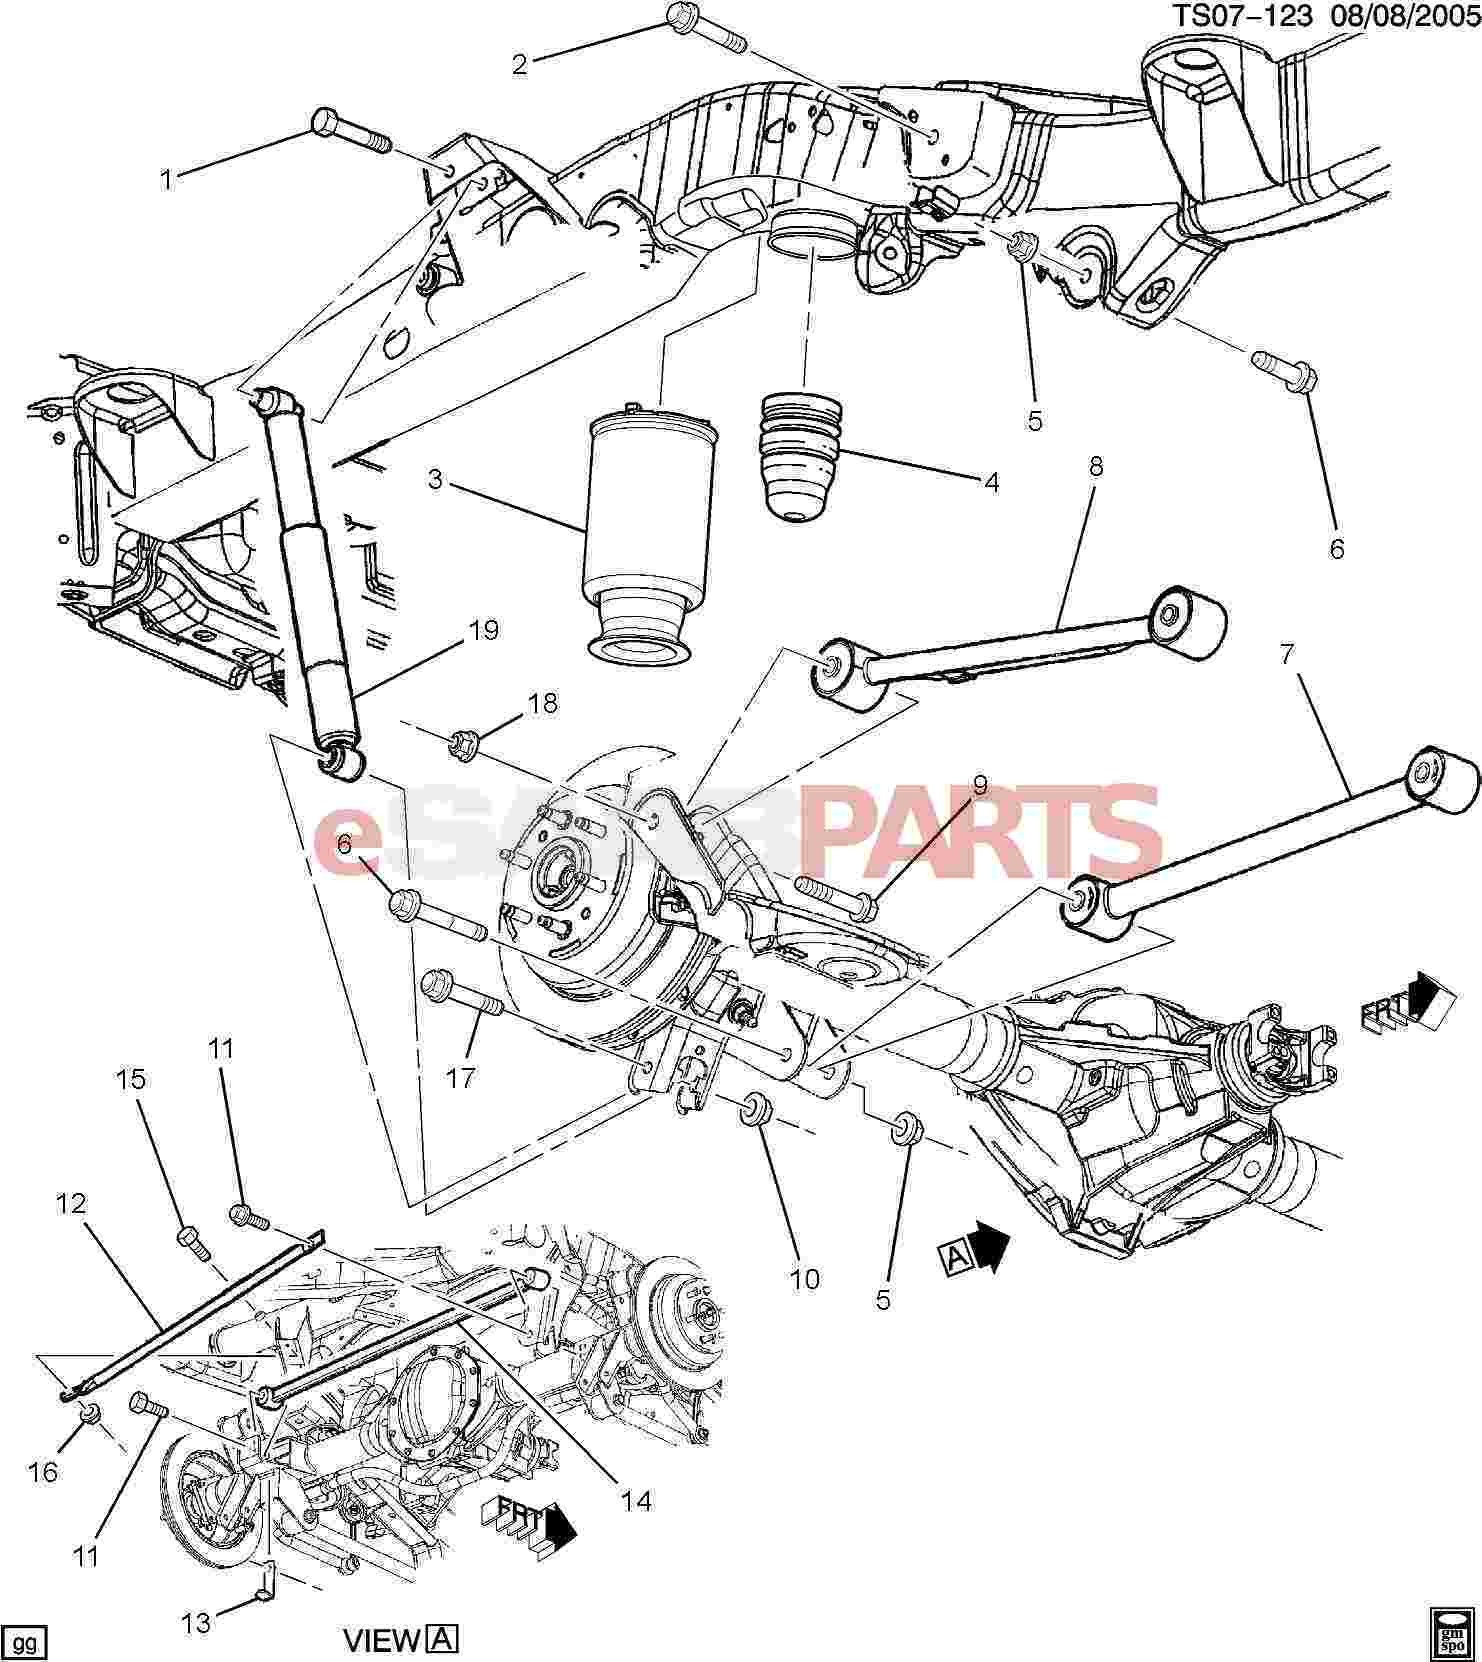 Saab 9 3 Engine Diagram Saab 9 7x Wiring Diagram Saab Wiring Diagrams Instructions Of Saab 9 3 Engine Diagram